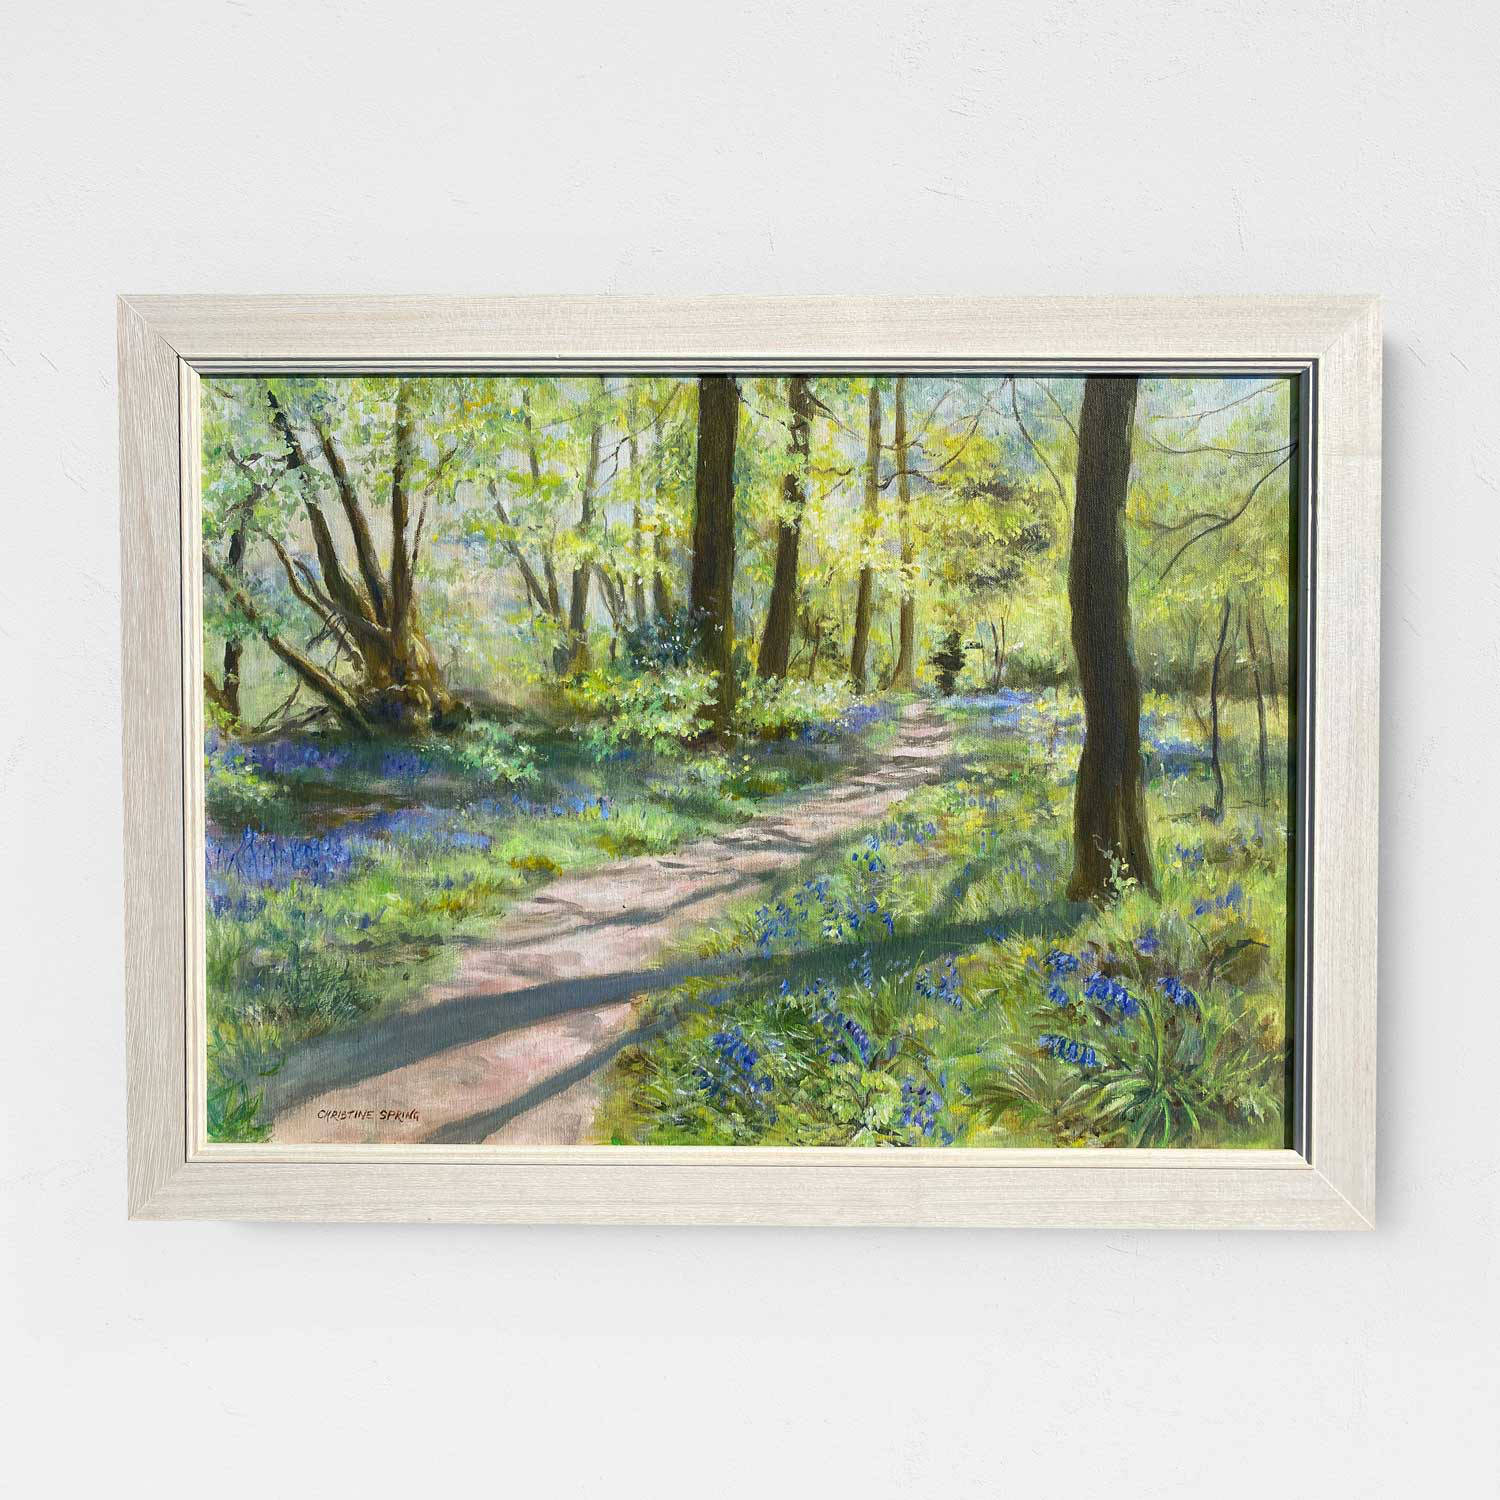 Christine Spring Springtime in Wendover Woods Acrylic 7870x580mm £575